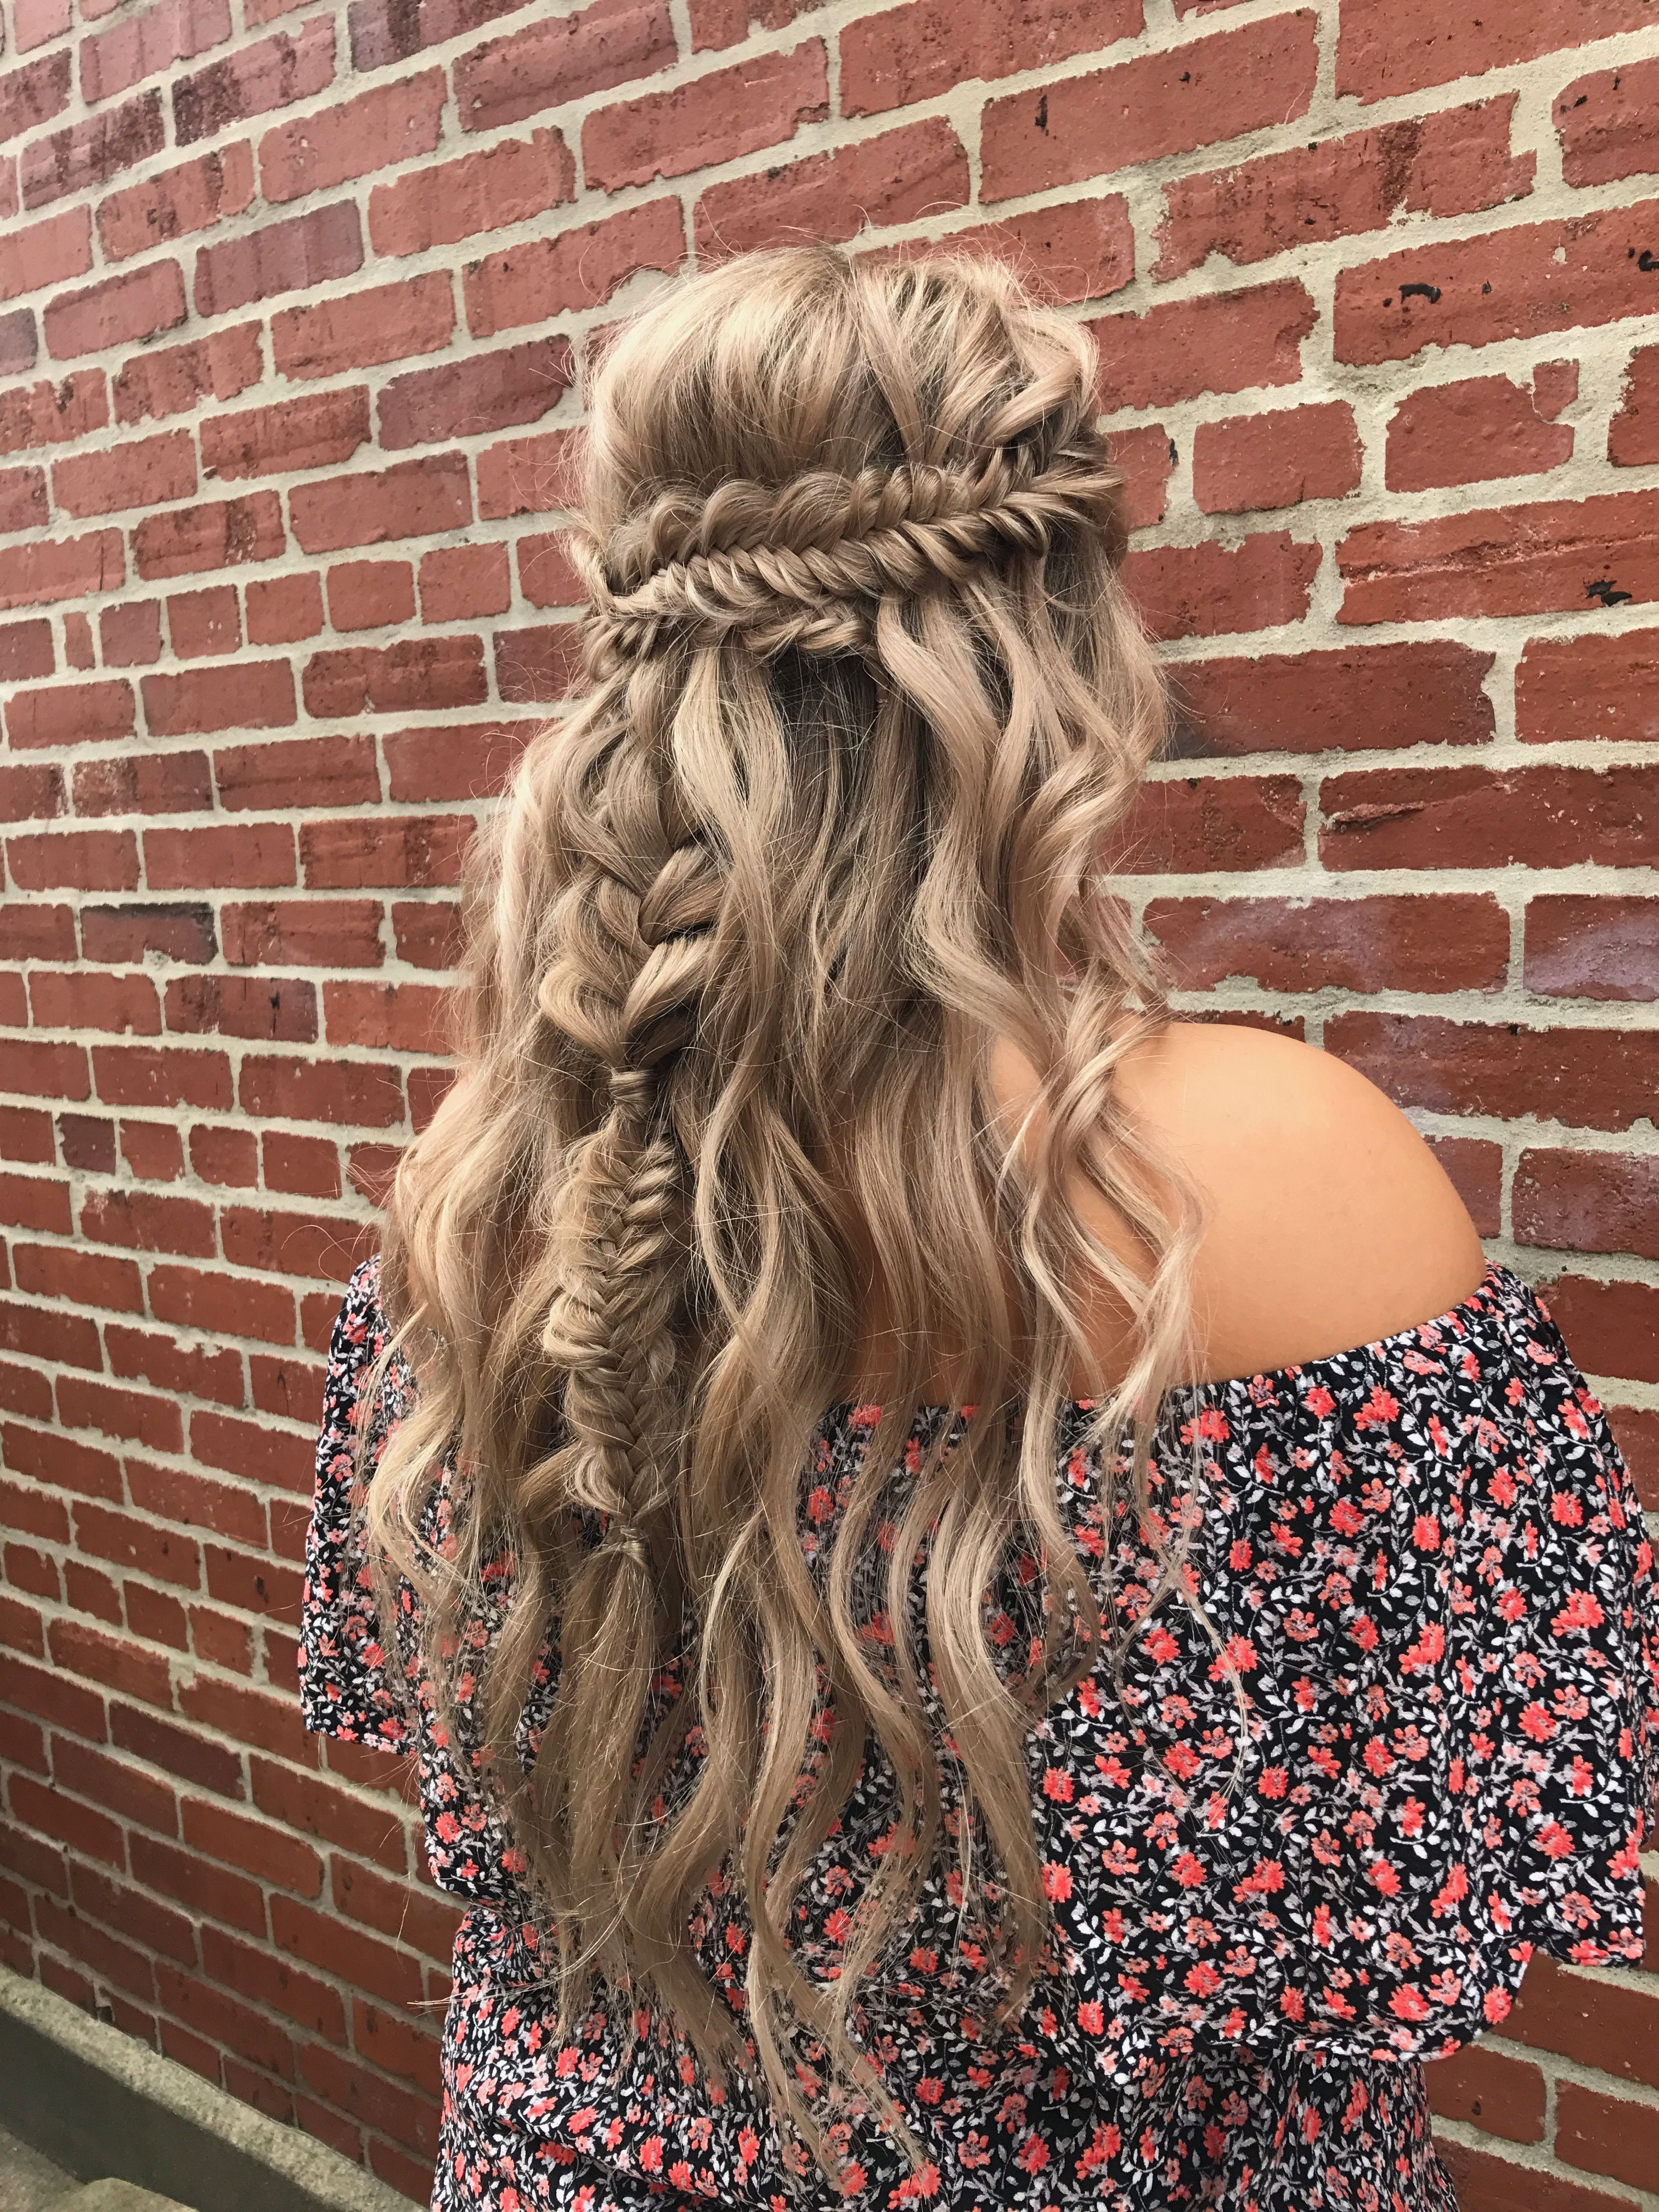 Full hd beach hair of iphone braided wedding fishtail boho bohemian braid